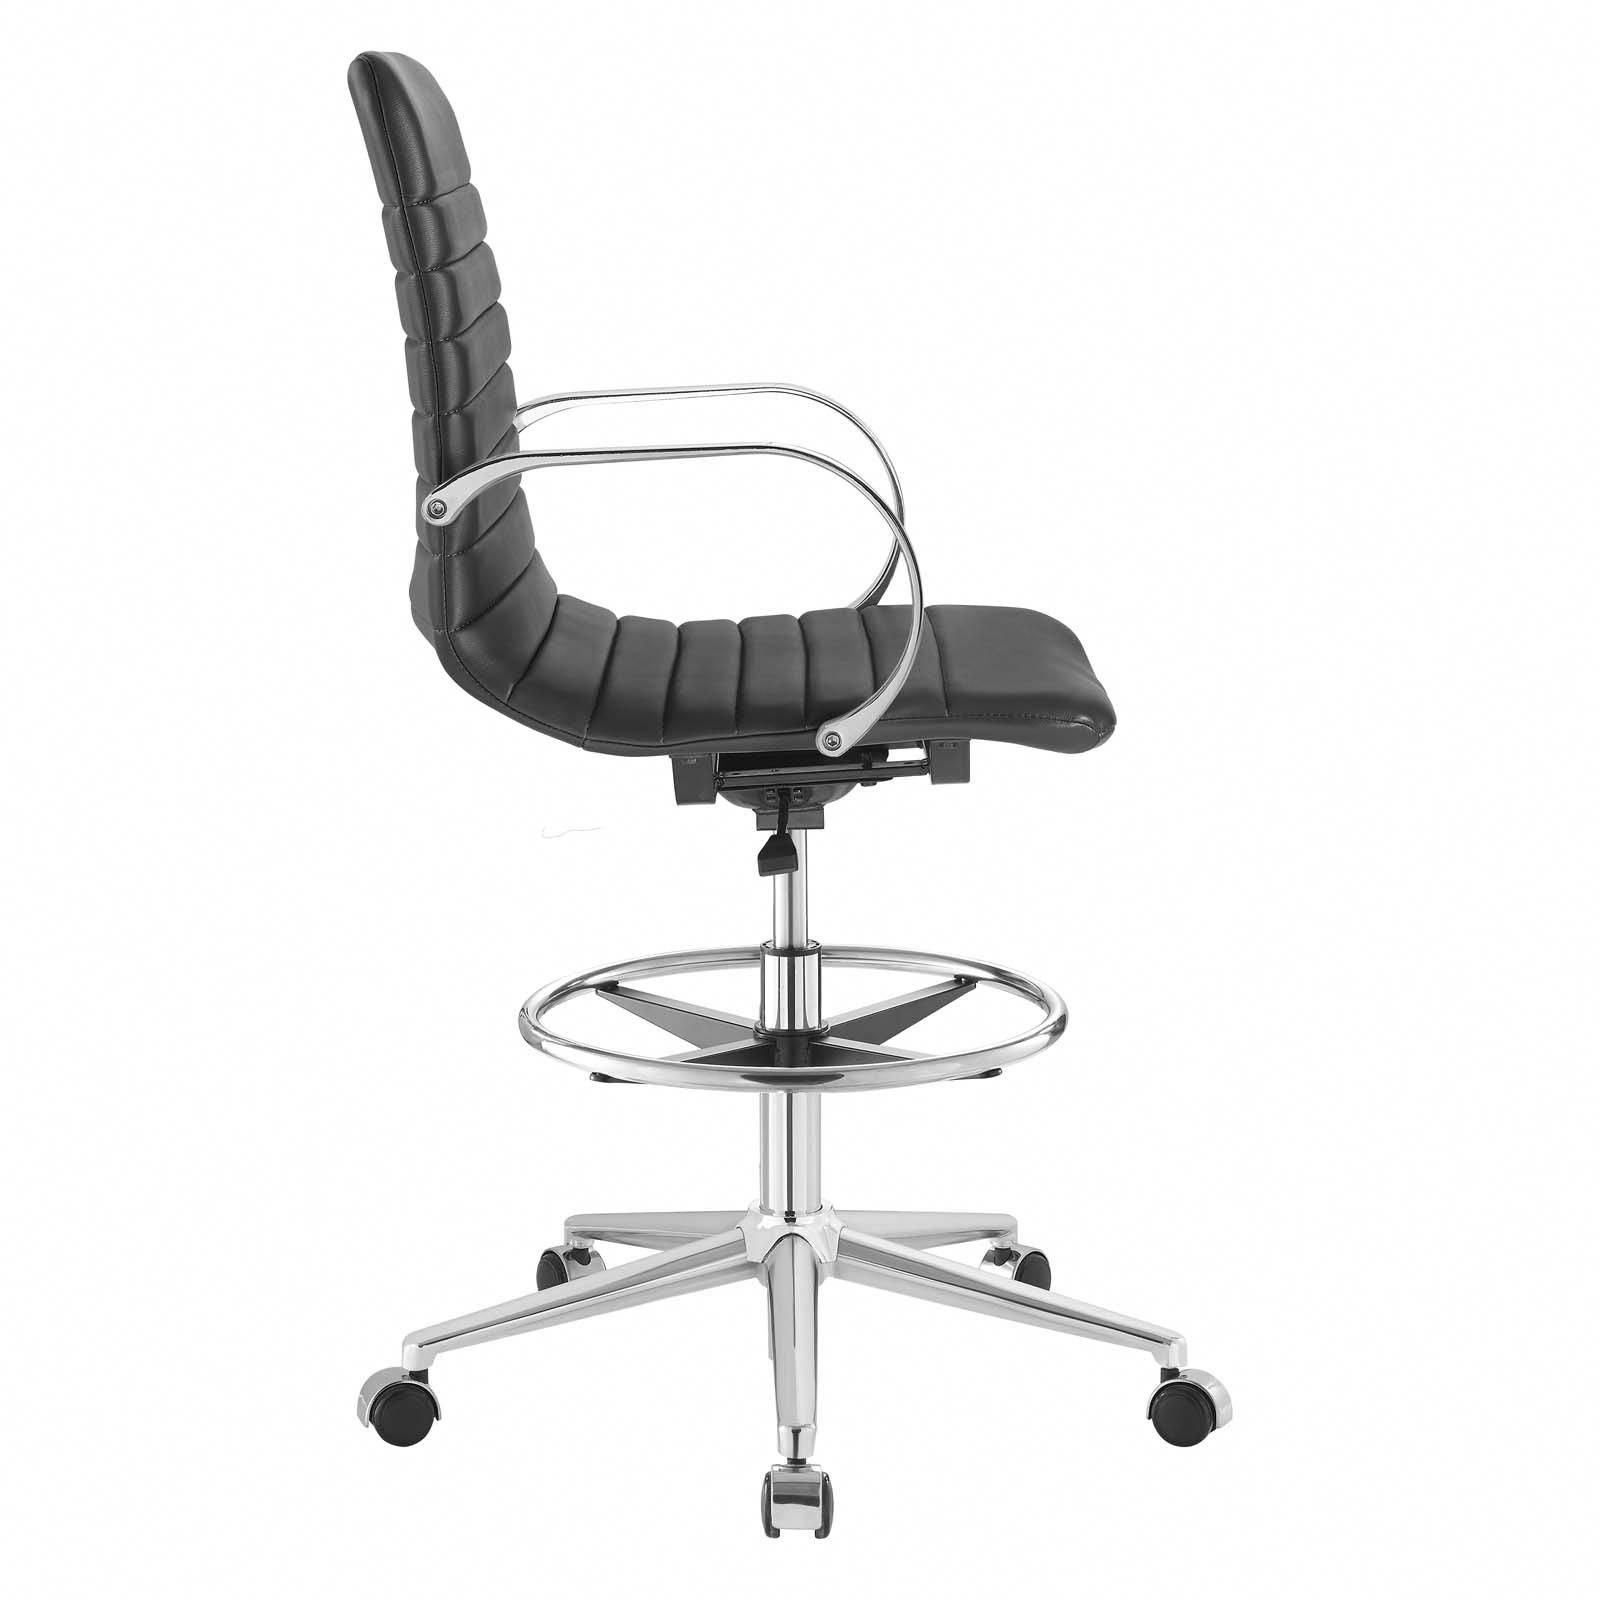 modern drafting chair walking with seat modway furniture groove ribbed back eei 2863 swing into creativity